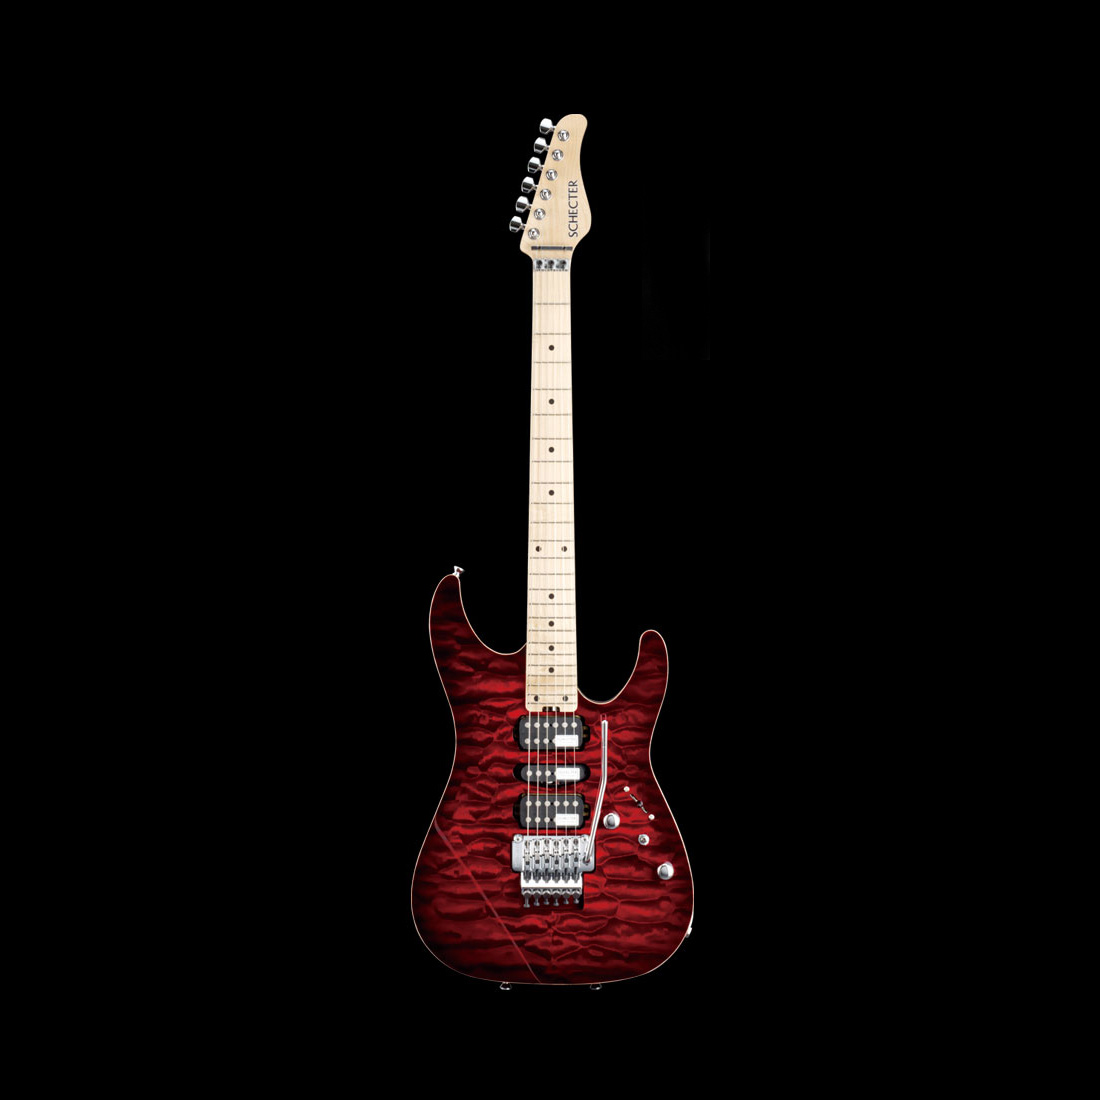 Schecter / NV-DX-24-AS-M Red Sunburst シェクター エレキギター 【お取り寄せ商品】